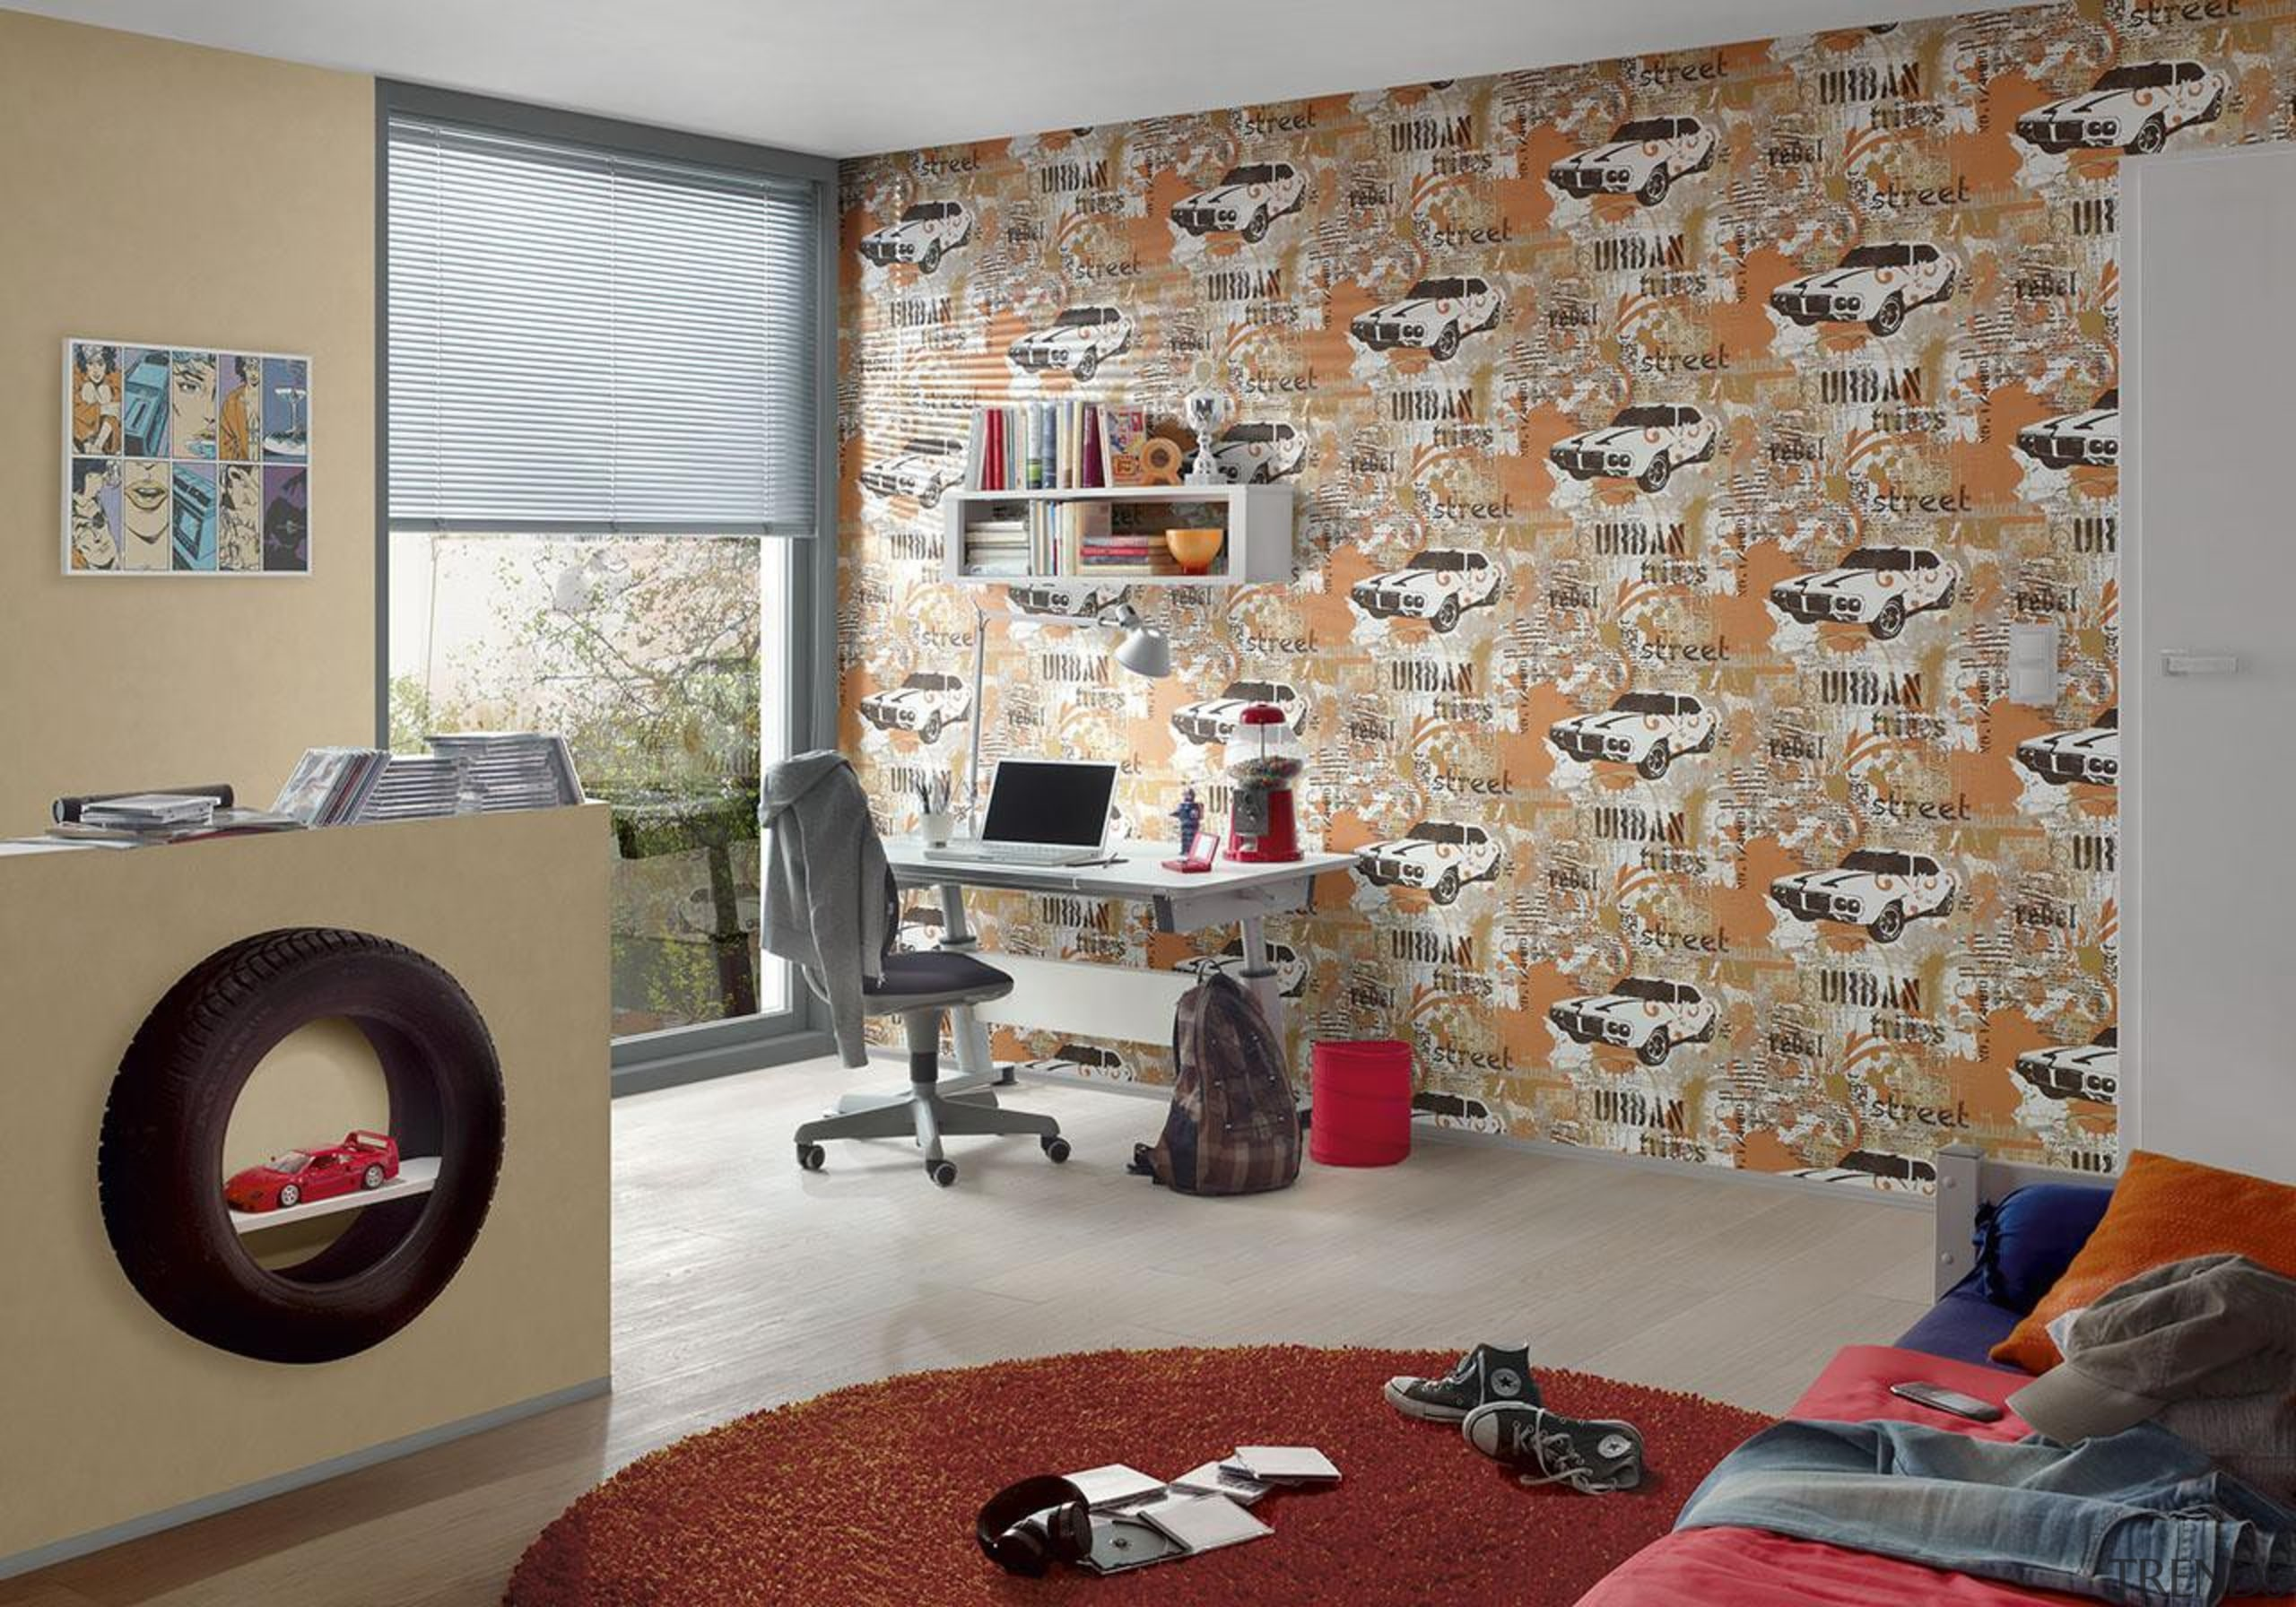 The new Boys and Girls Collection is a flooring, home, interior design, living room, room, textile, wall, window, gray